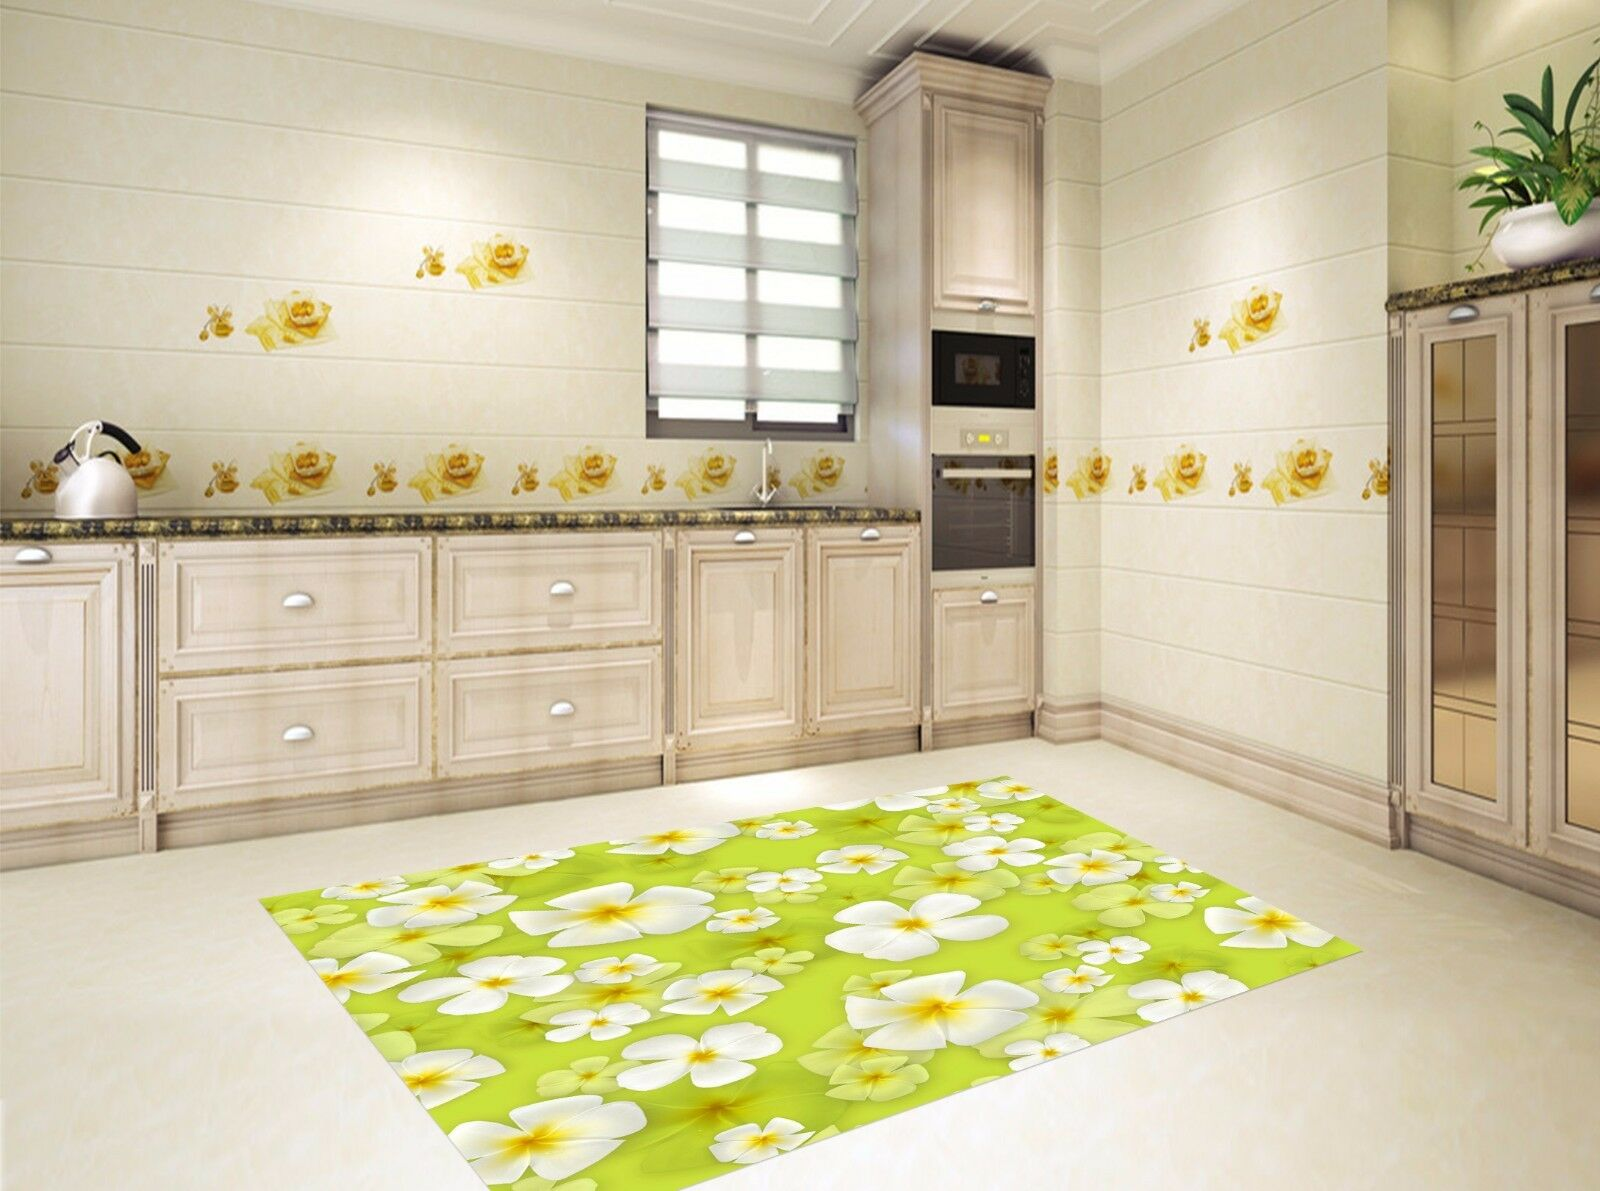 3D Lawn Flowers 92 Kitchen Mat Floor Murals Wall Print Wall AJ WALLPAPER UK Kyra